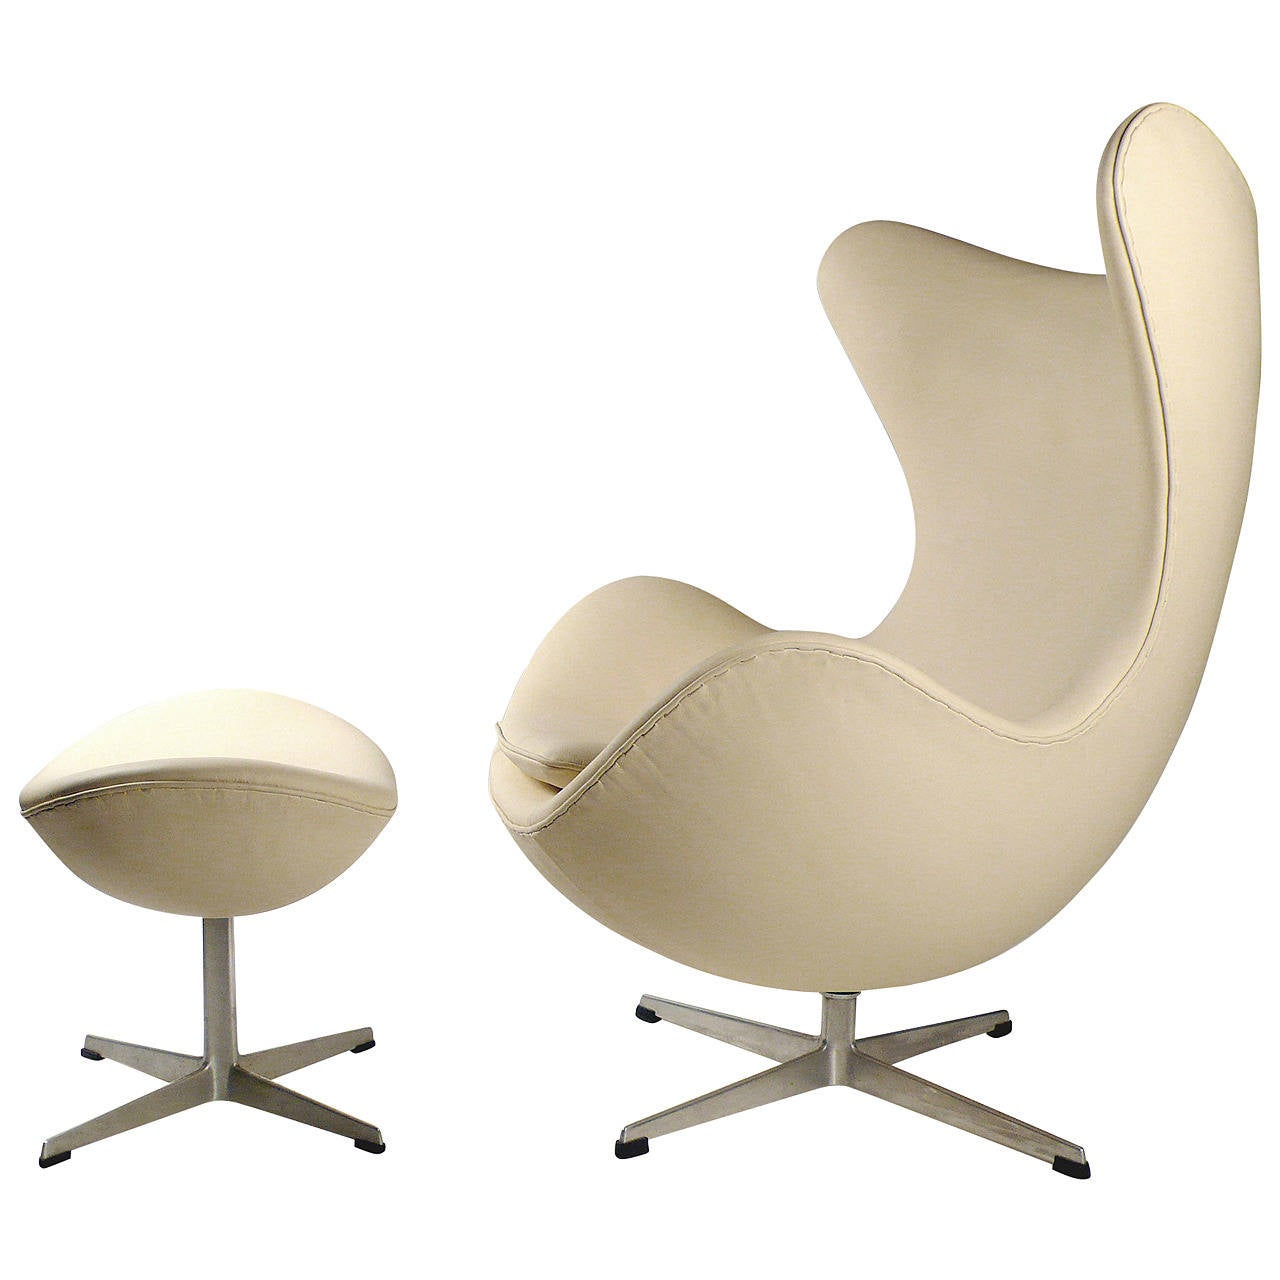 Early Production Leather Egg Chair With Ottoman By Arne Jacobsen At 1stdibs